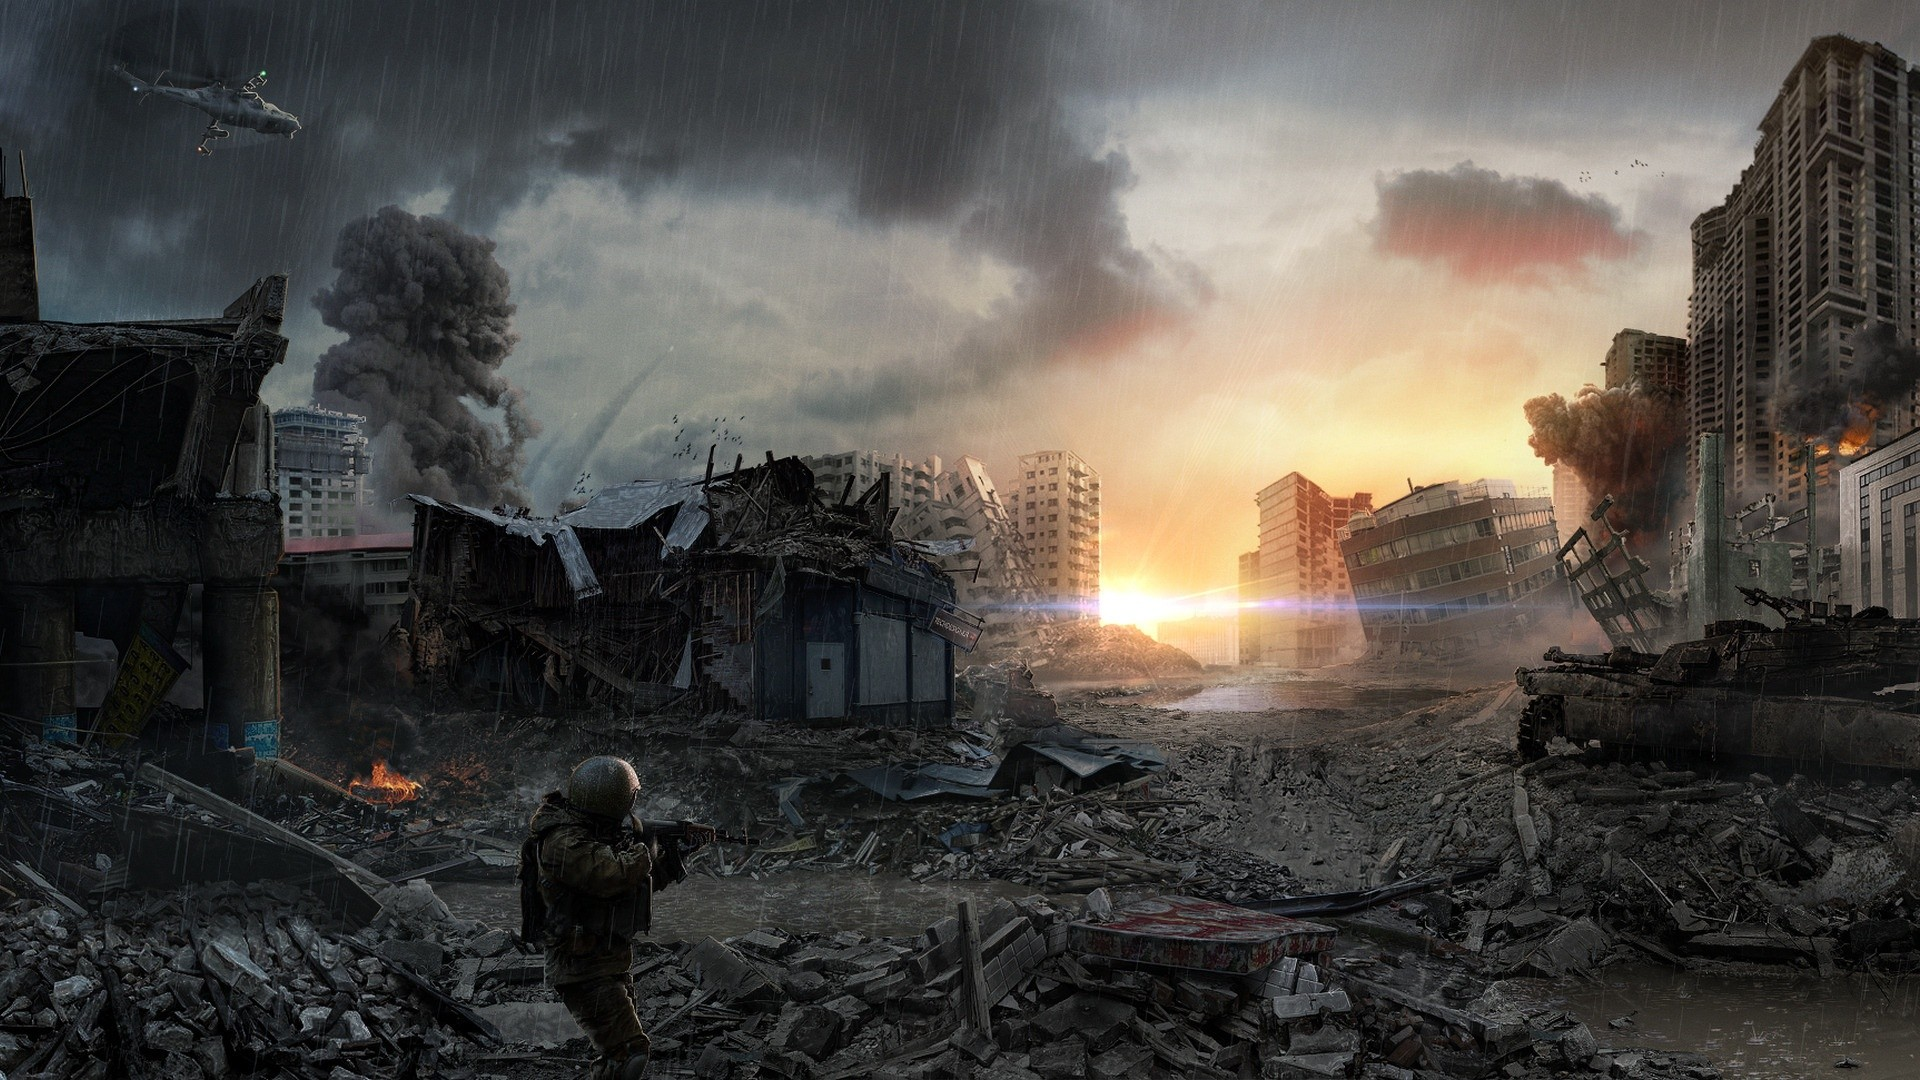 General 1920x1080 apocalyptic digital art sky ruin cityscape artwork futuristic